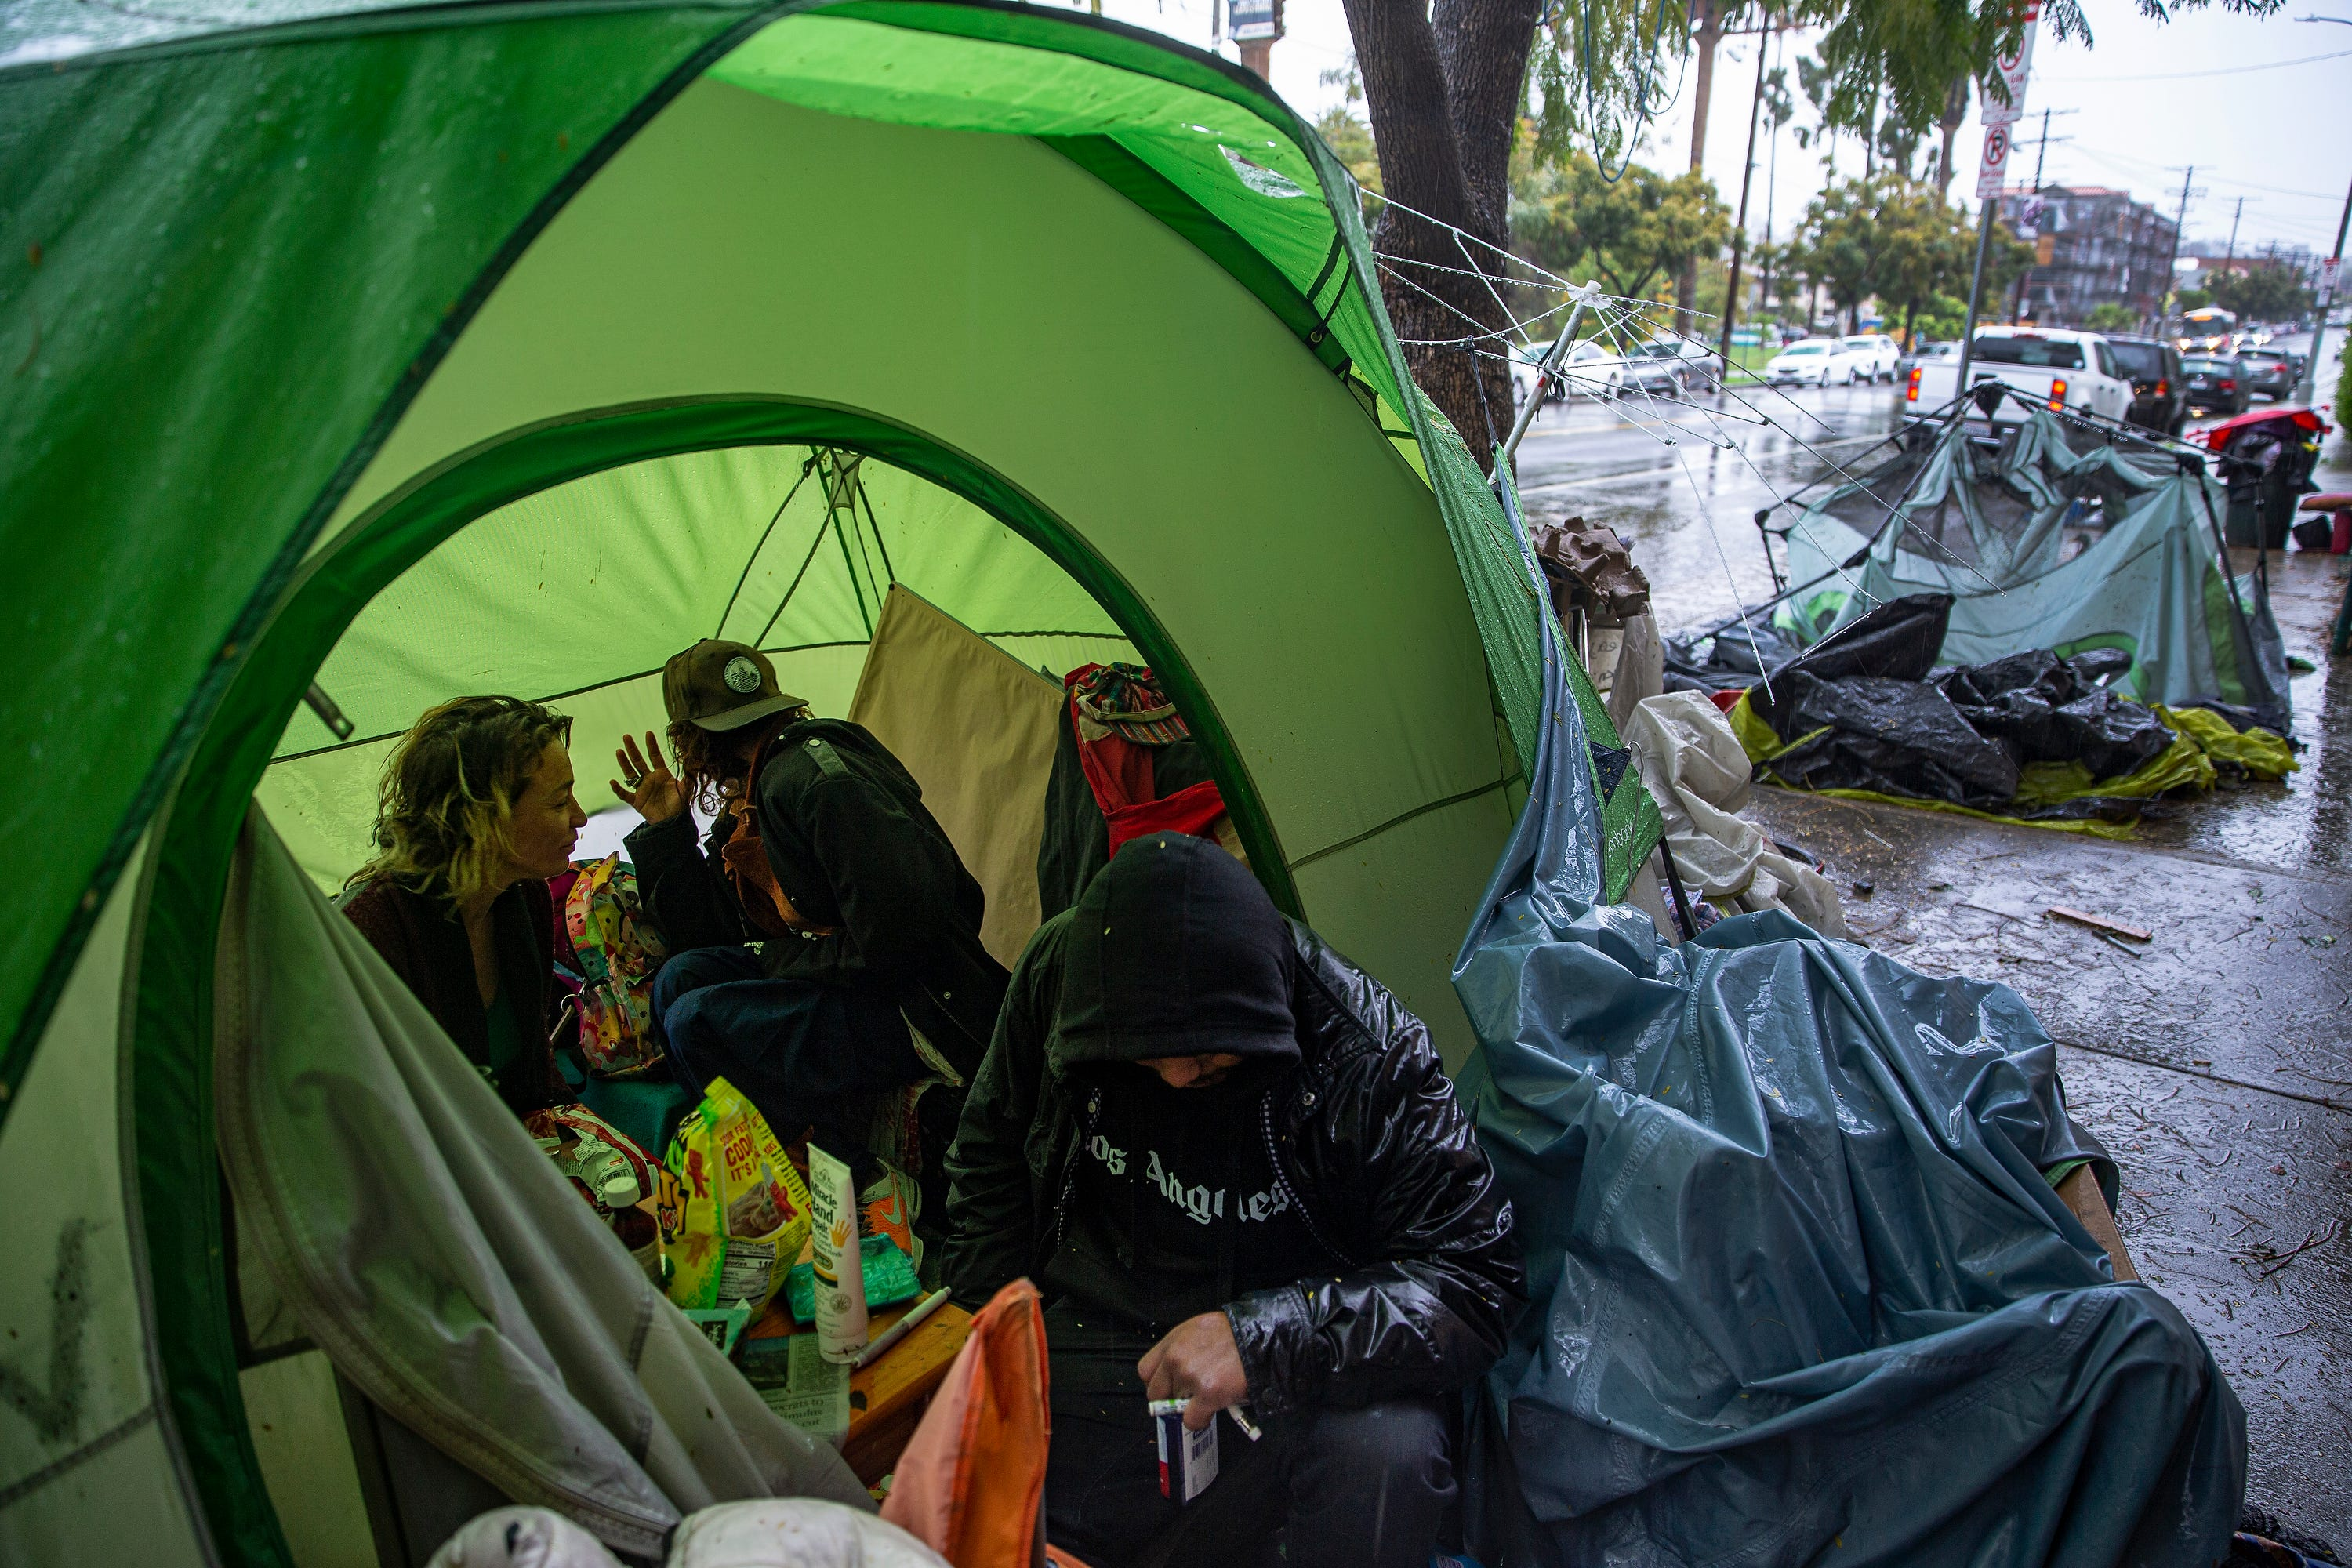 LA homeless spending could hit $1B as crisis spreads 1